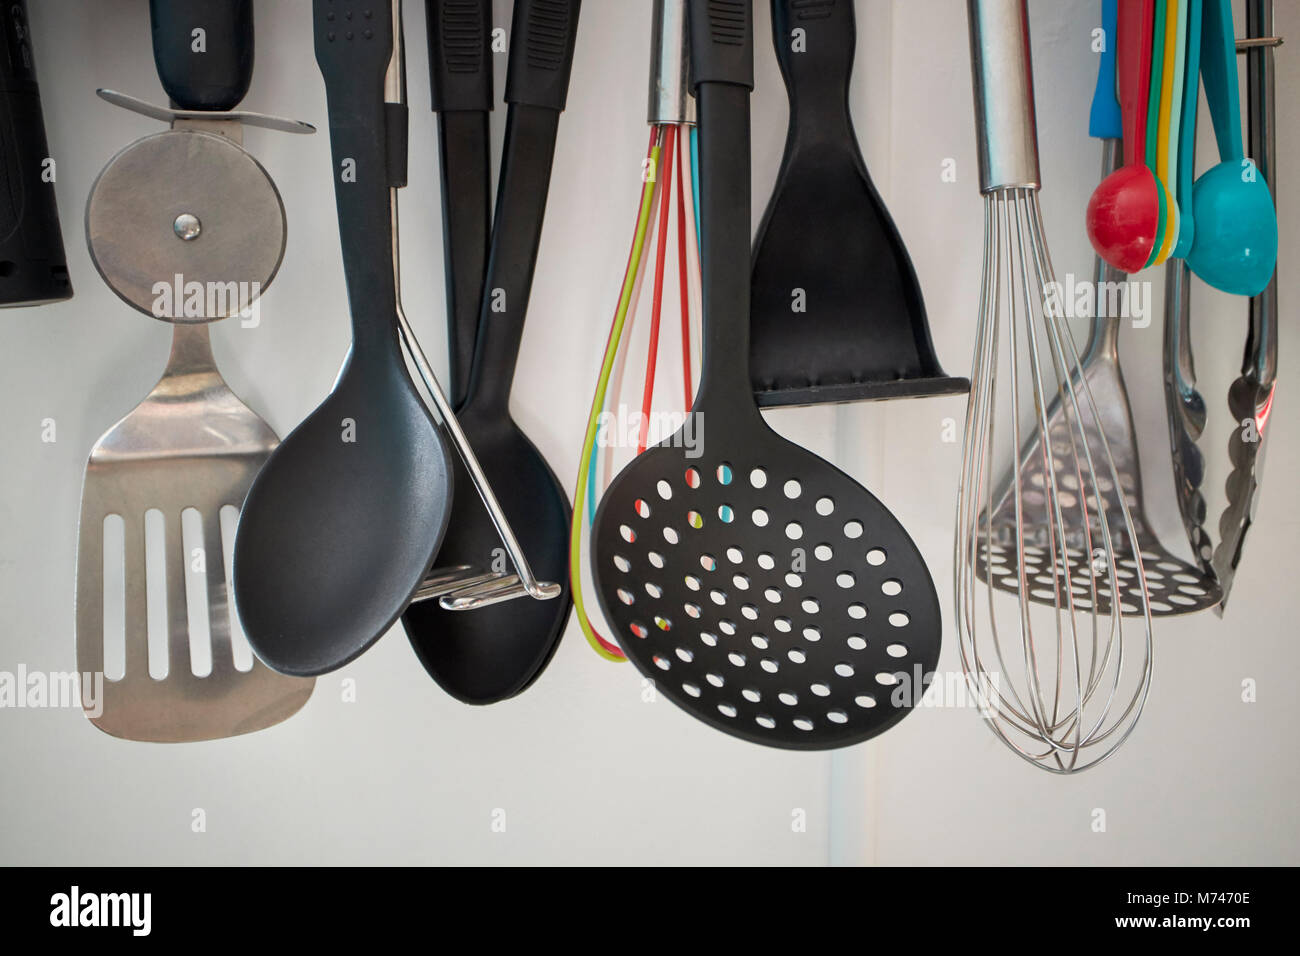 variety of kitchen utensils hanging on a rack in a kitchen in the uk - Stock Image